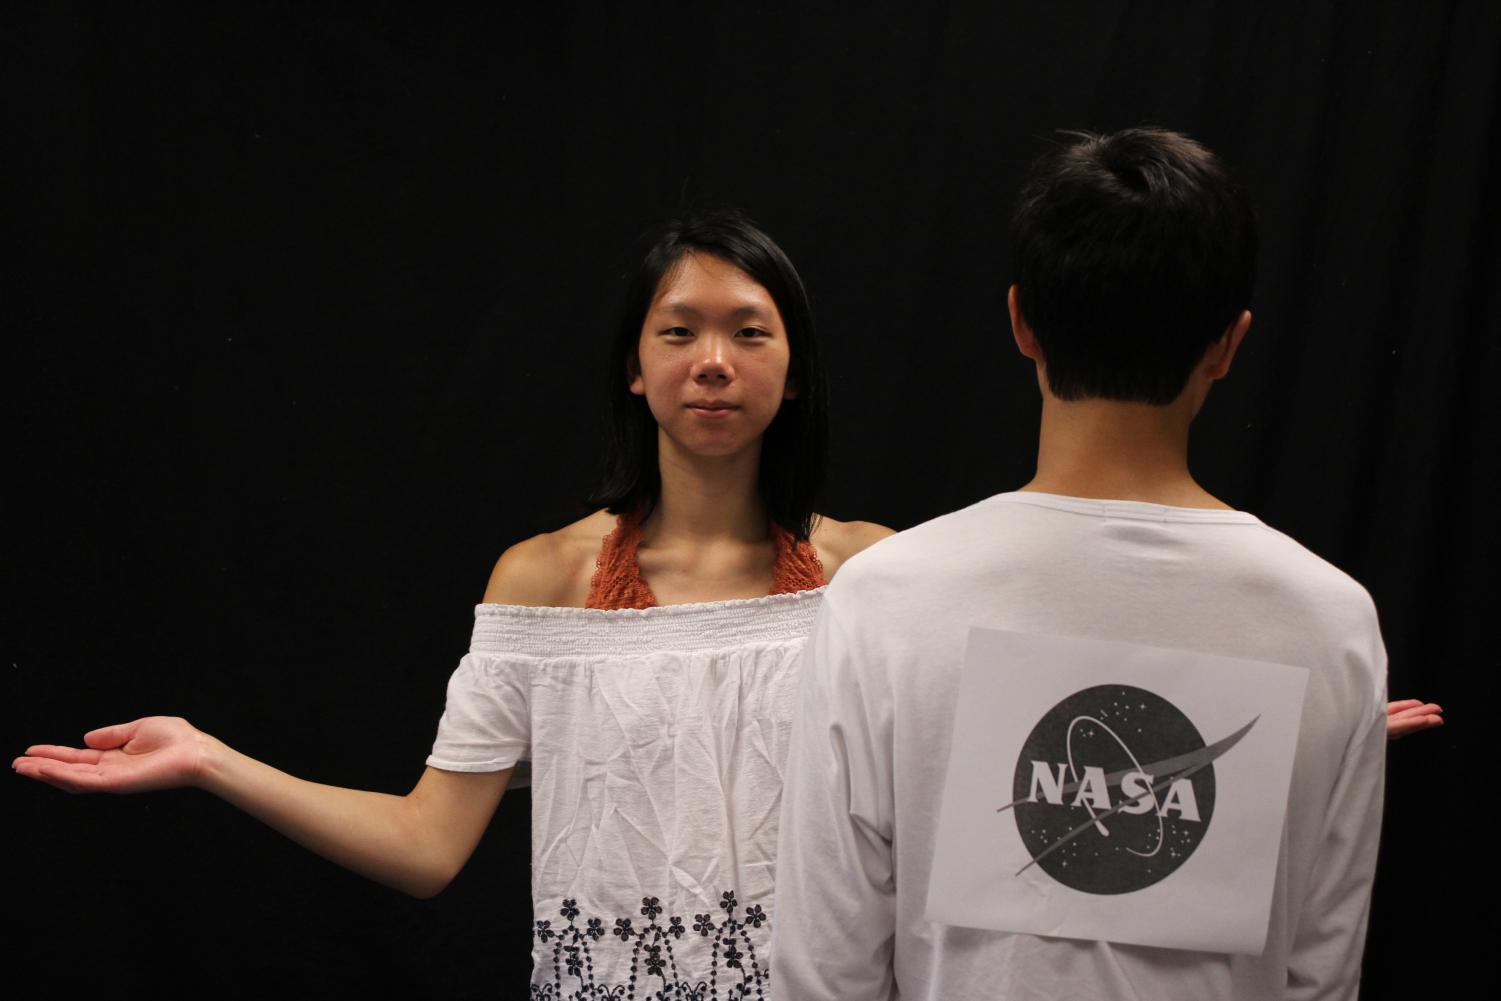 Out of stock: lack of NASA spacesuit sizes highlights gender inequality in STEM